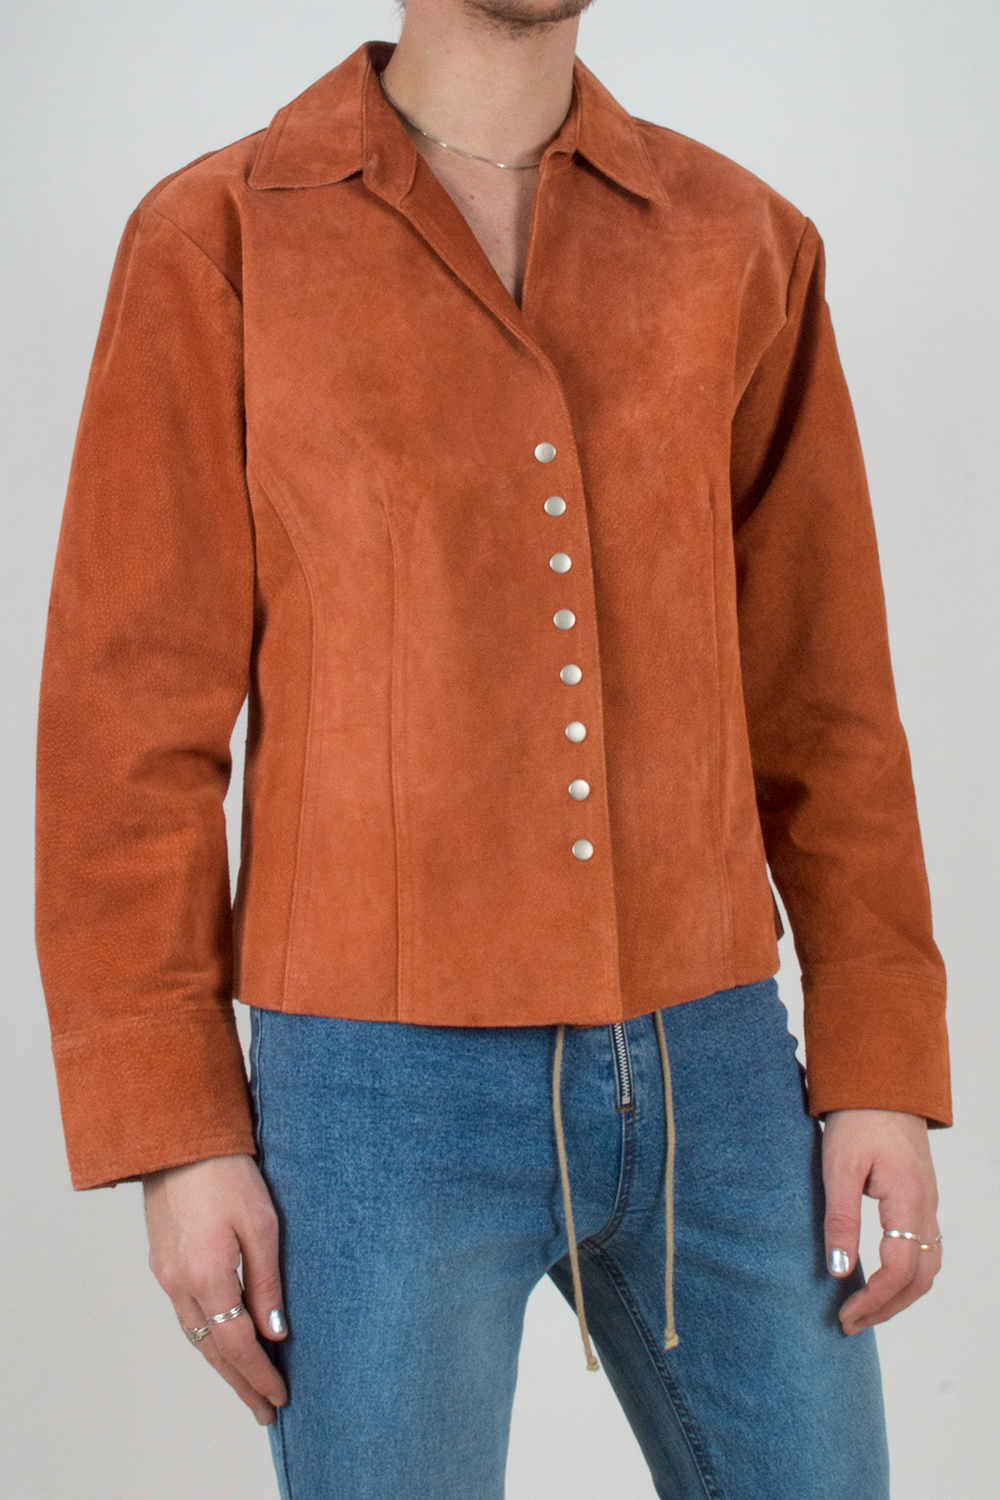 vintage orange suede jacket with silver snap buttons